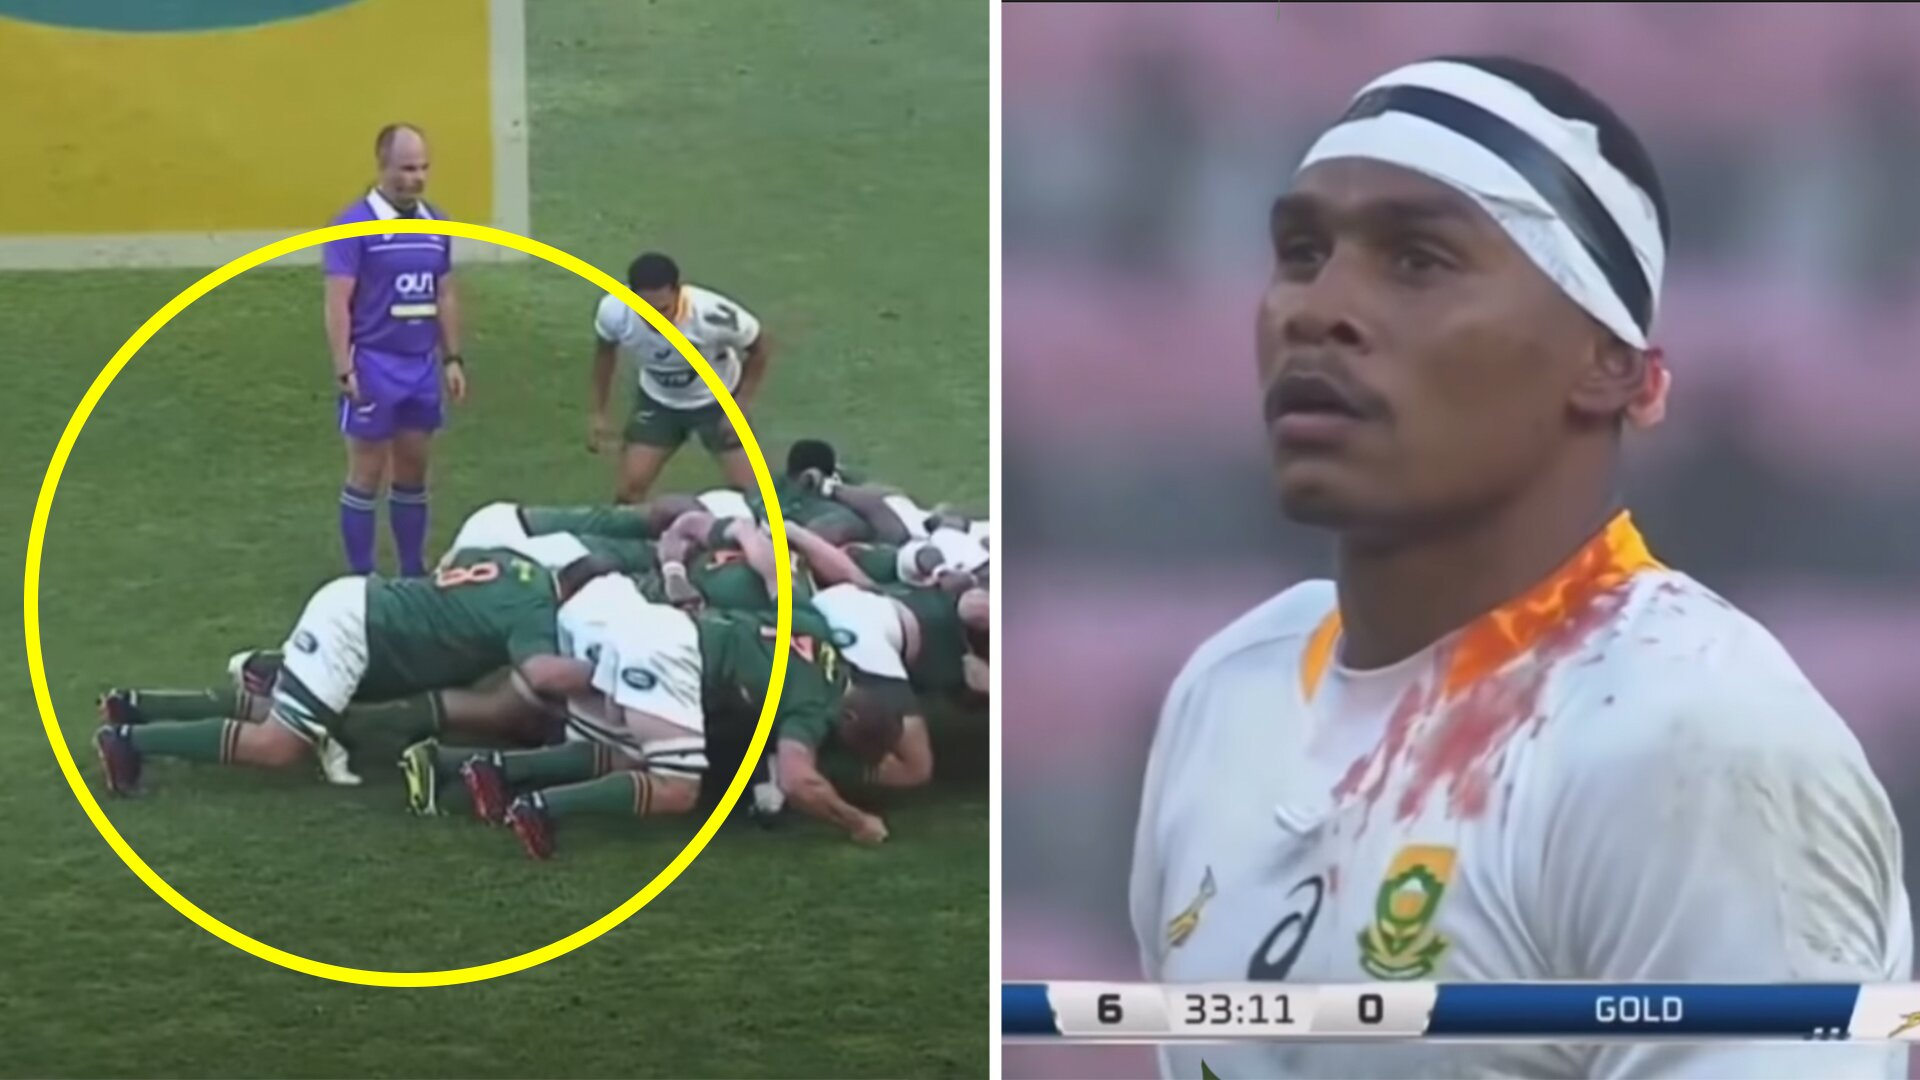 The Springbok showdown match has been branded as one of the most boring rugby matches in history